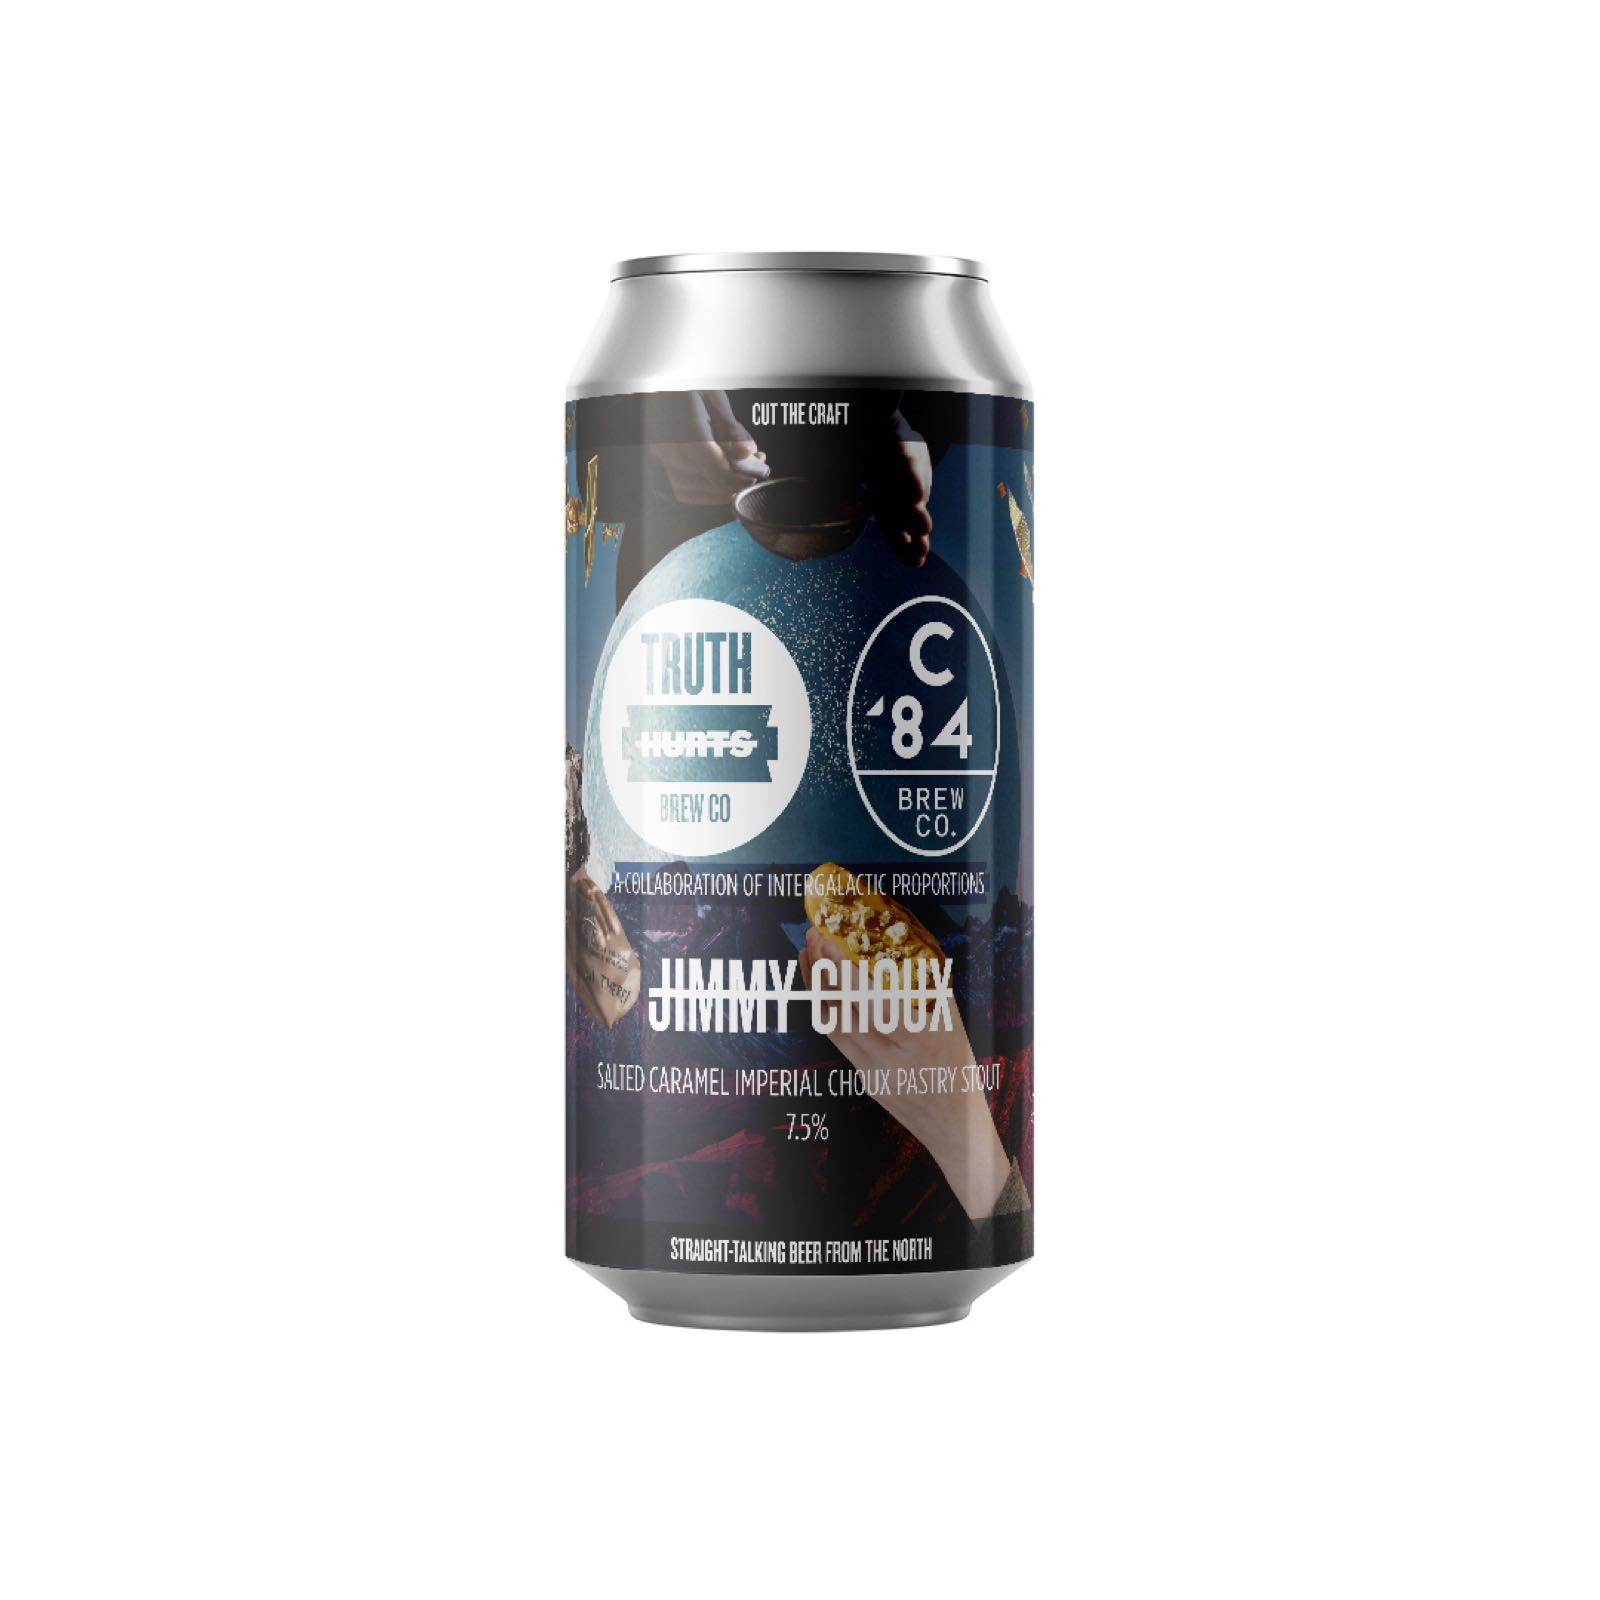 Truth Hurts Jimmy Choux // Salted Caramel Choux Pastry Stout 7.5% 440ml Can